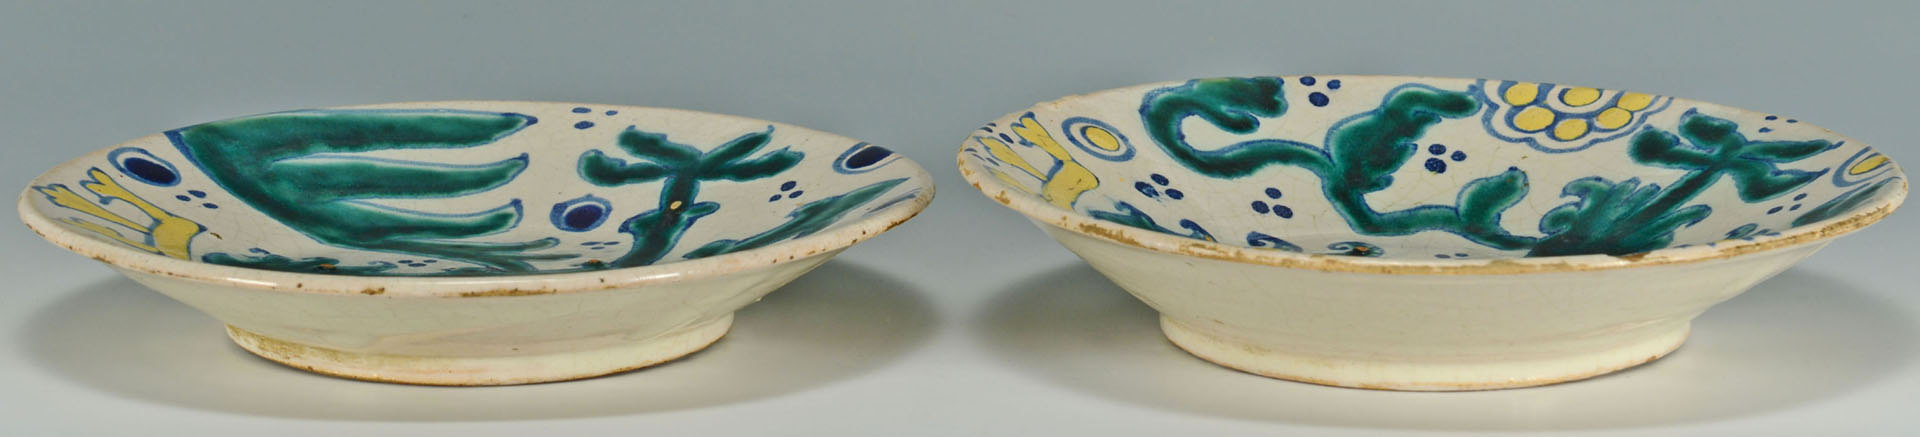 Lot 574: Two European Faience Plates w/ Griffin & Eagle, 19